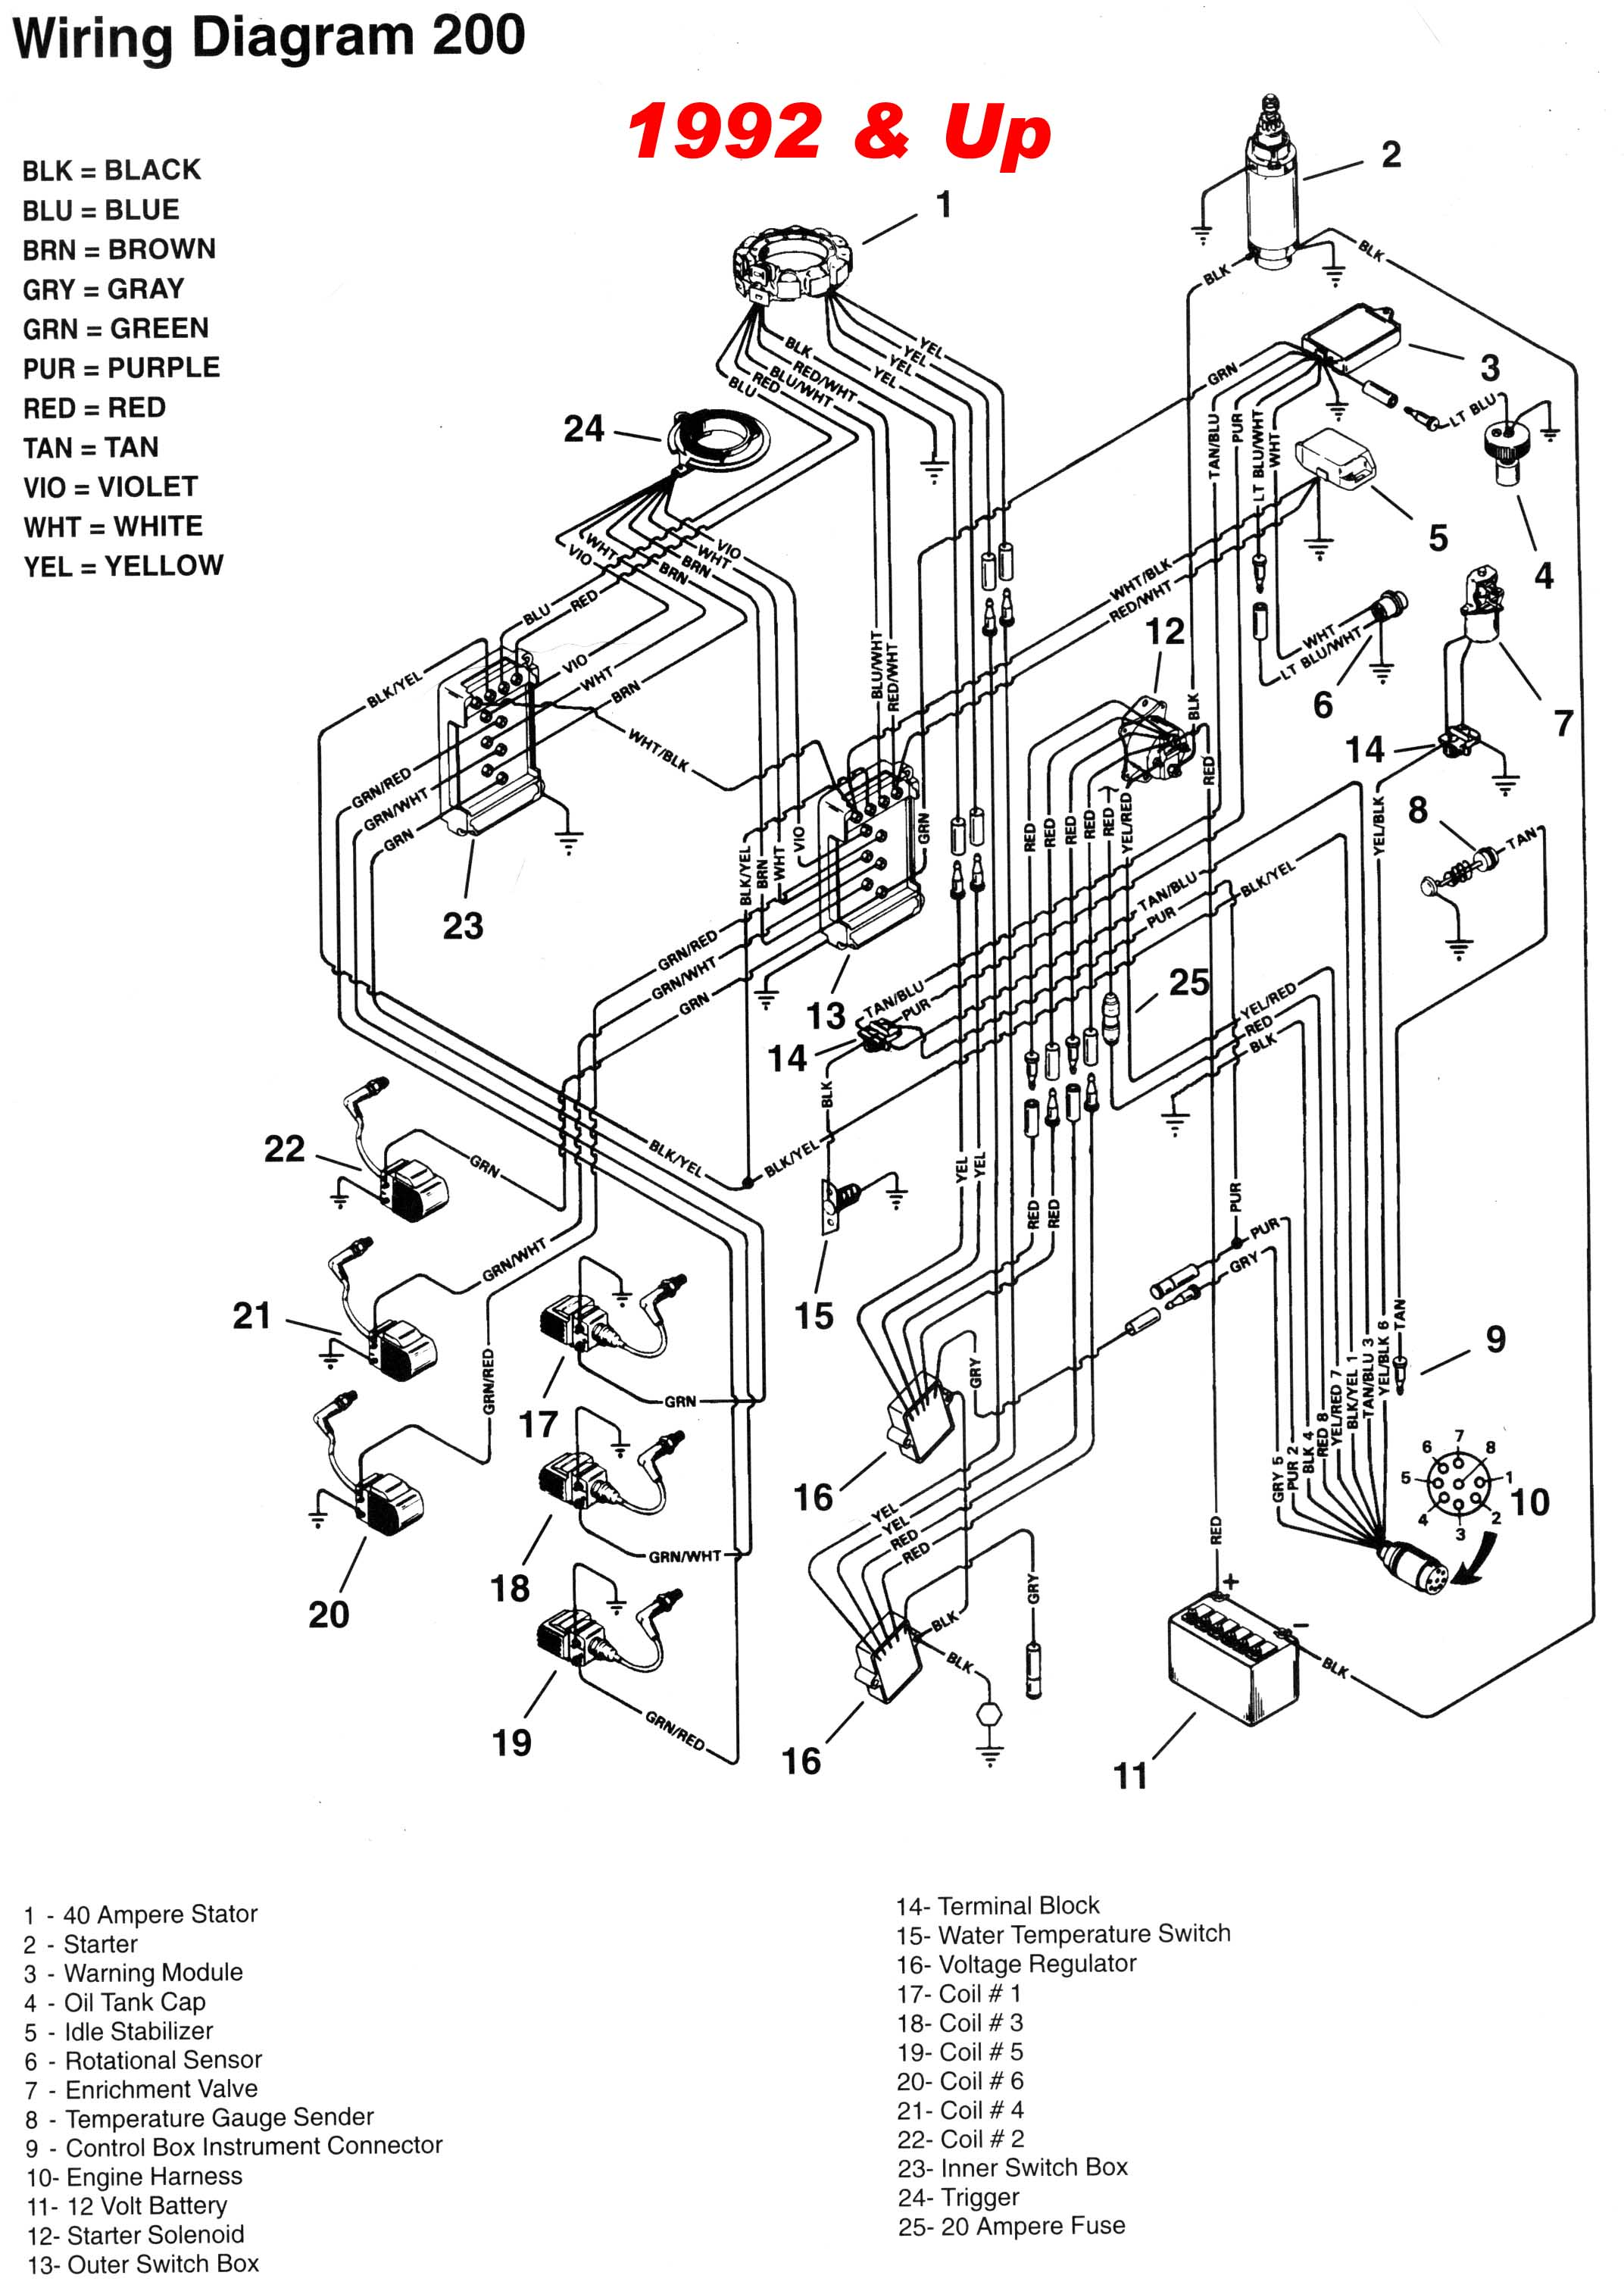 mercury_92up_200_wiring mercury outboard 2 5 and 3 0l v6 and gearcase faq mercury outboard wiring harness schematic at bakdesigns.co